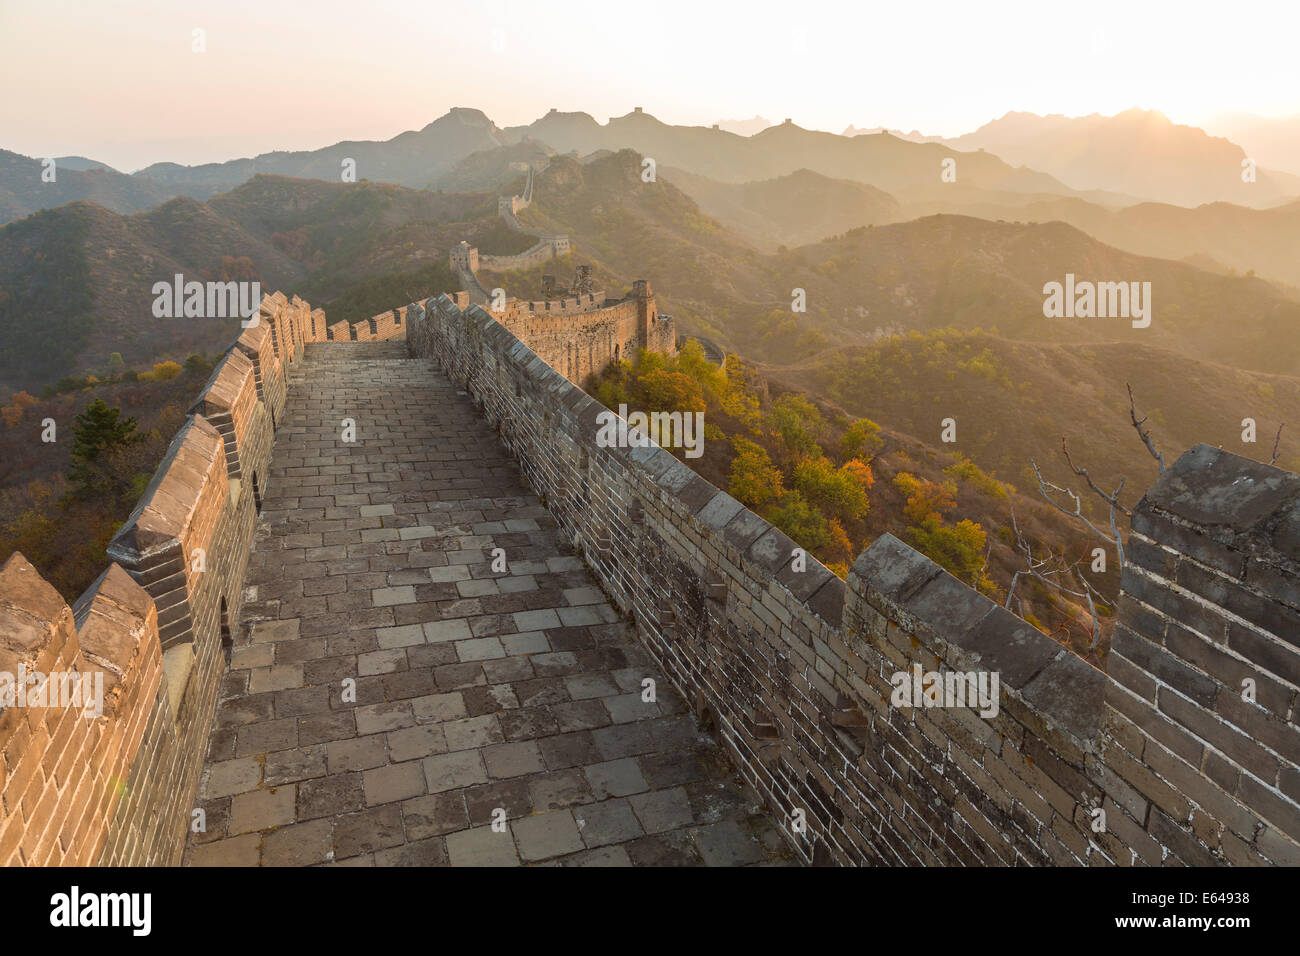 Great Wall, Jinshanling, Beijing, China - Stock Image